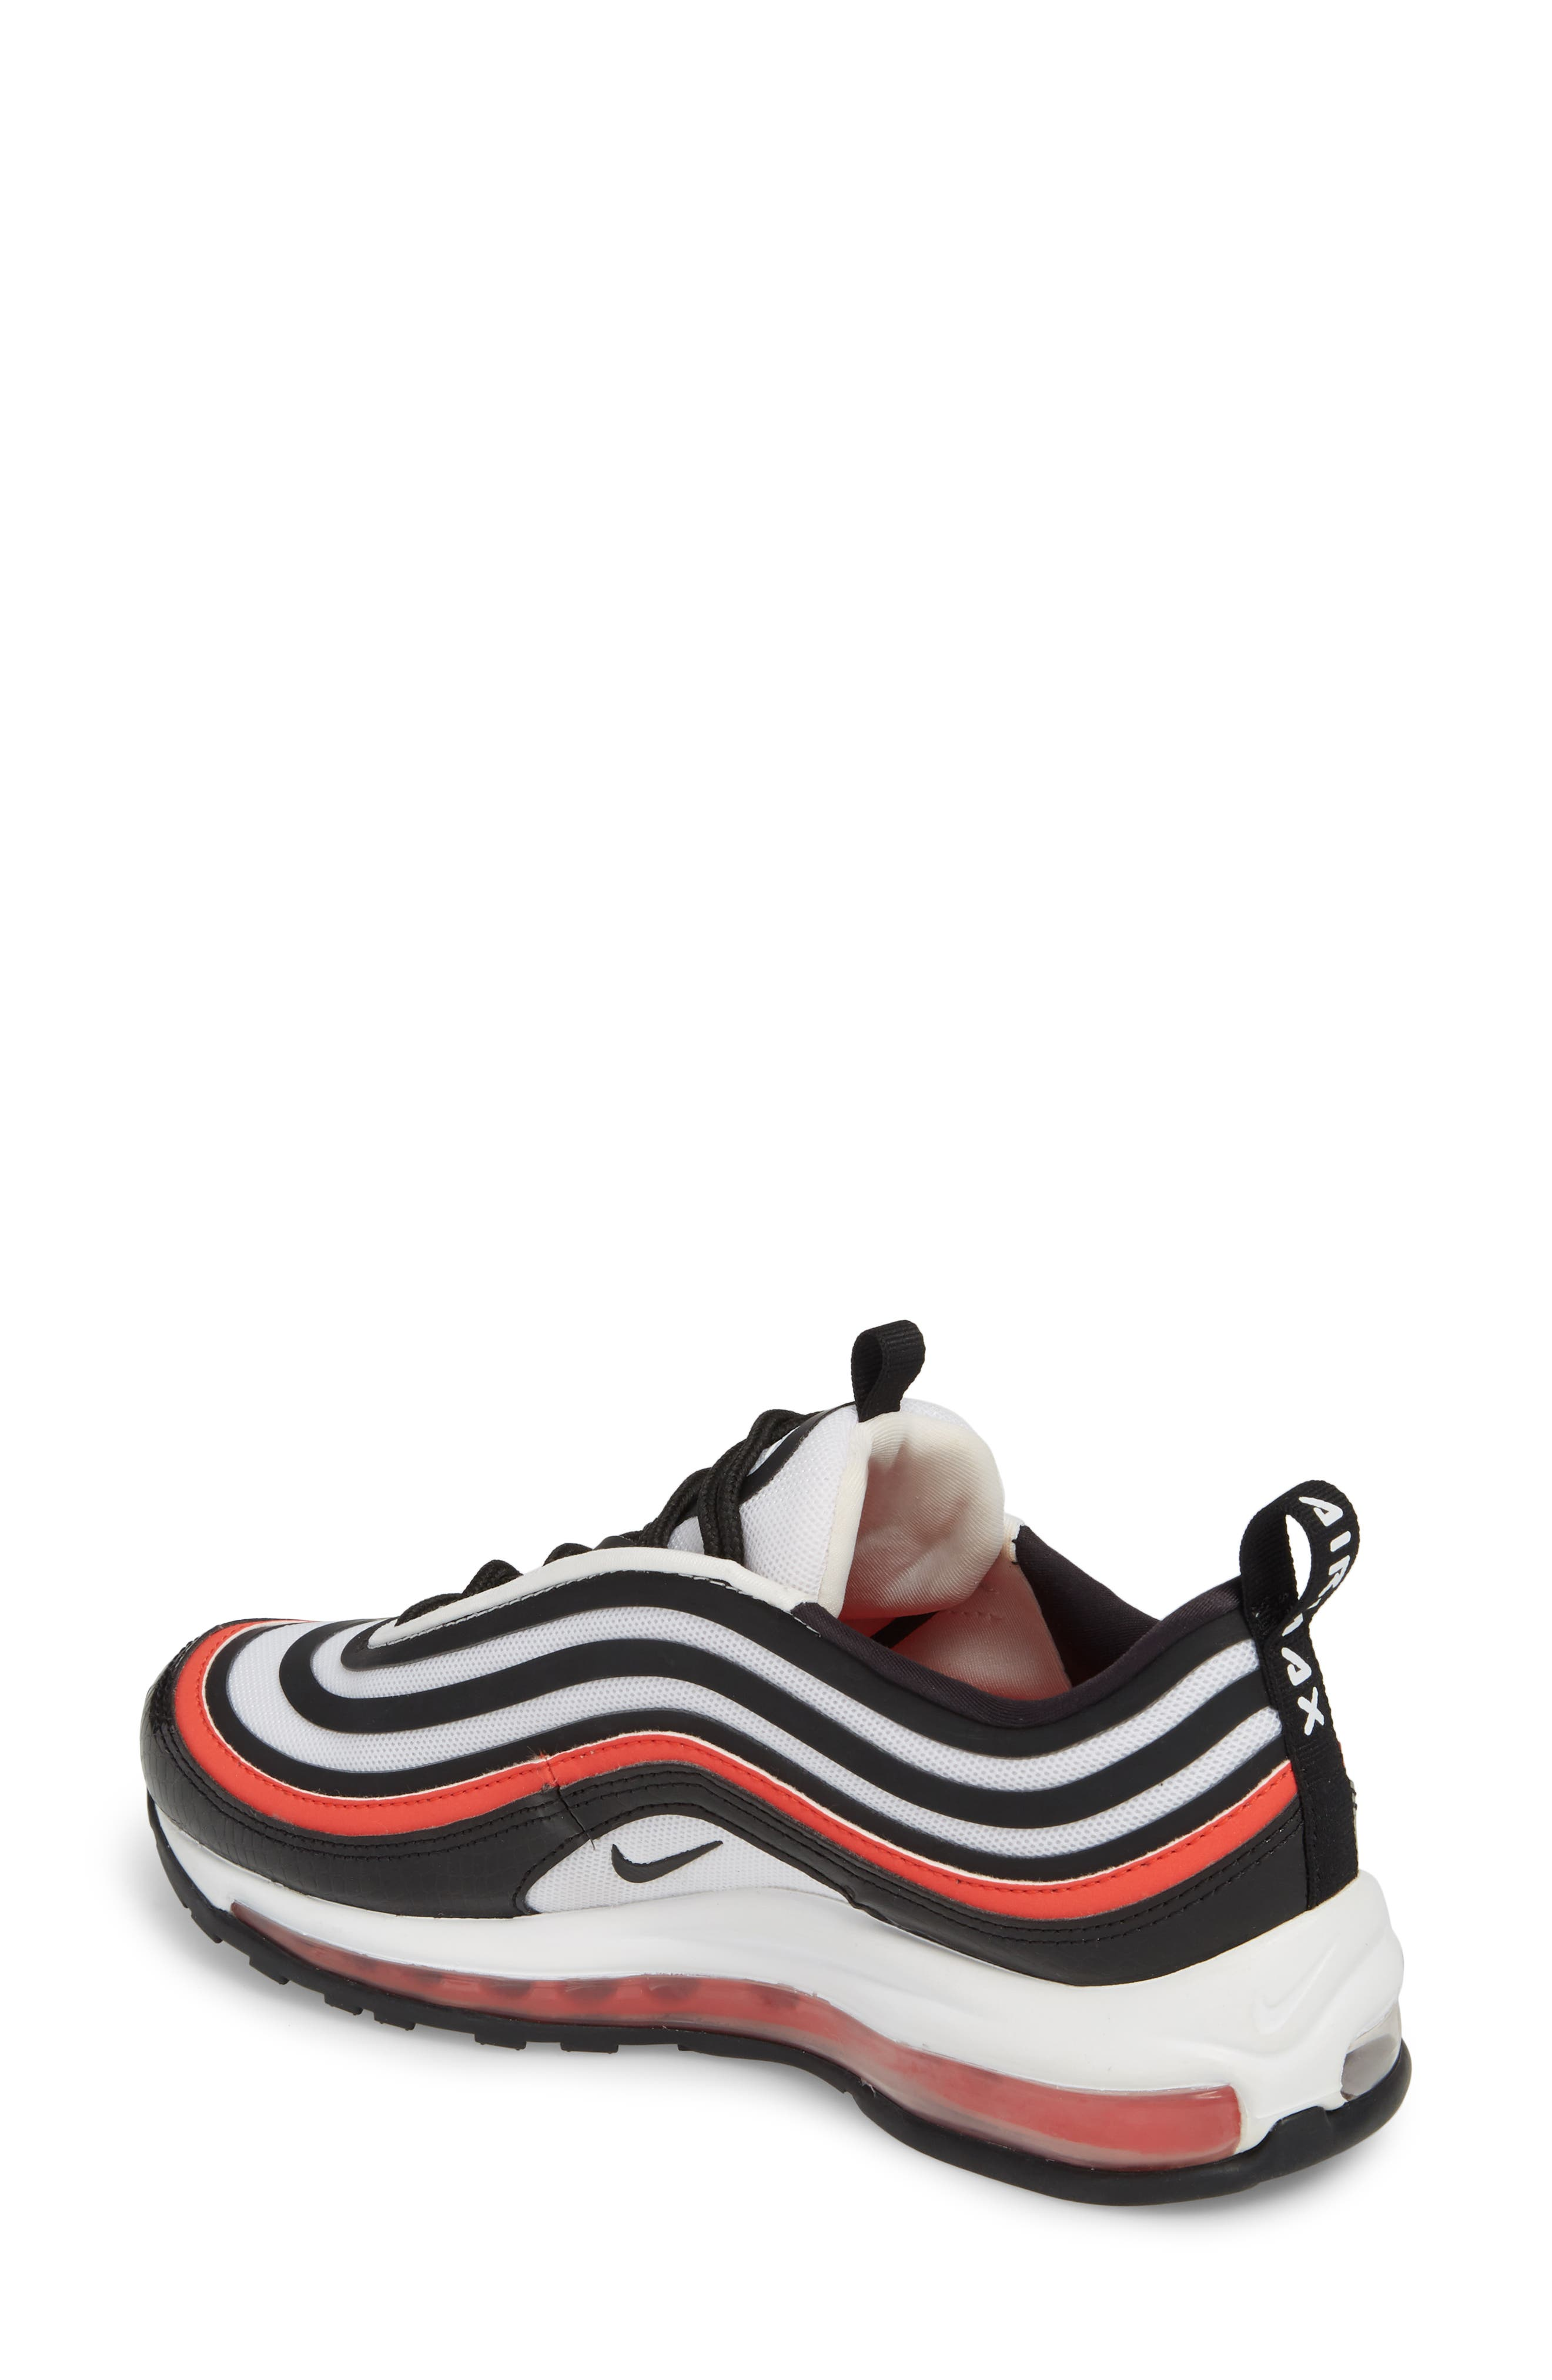 Air Max 97 Ultra '17 SE Sneaker,                             Alternate thumbnail 2, color,                             BLACK/ BLACK/ WHITE/ RED